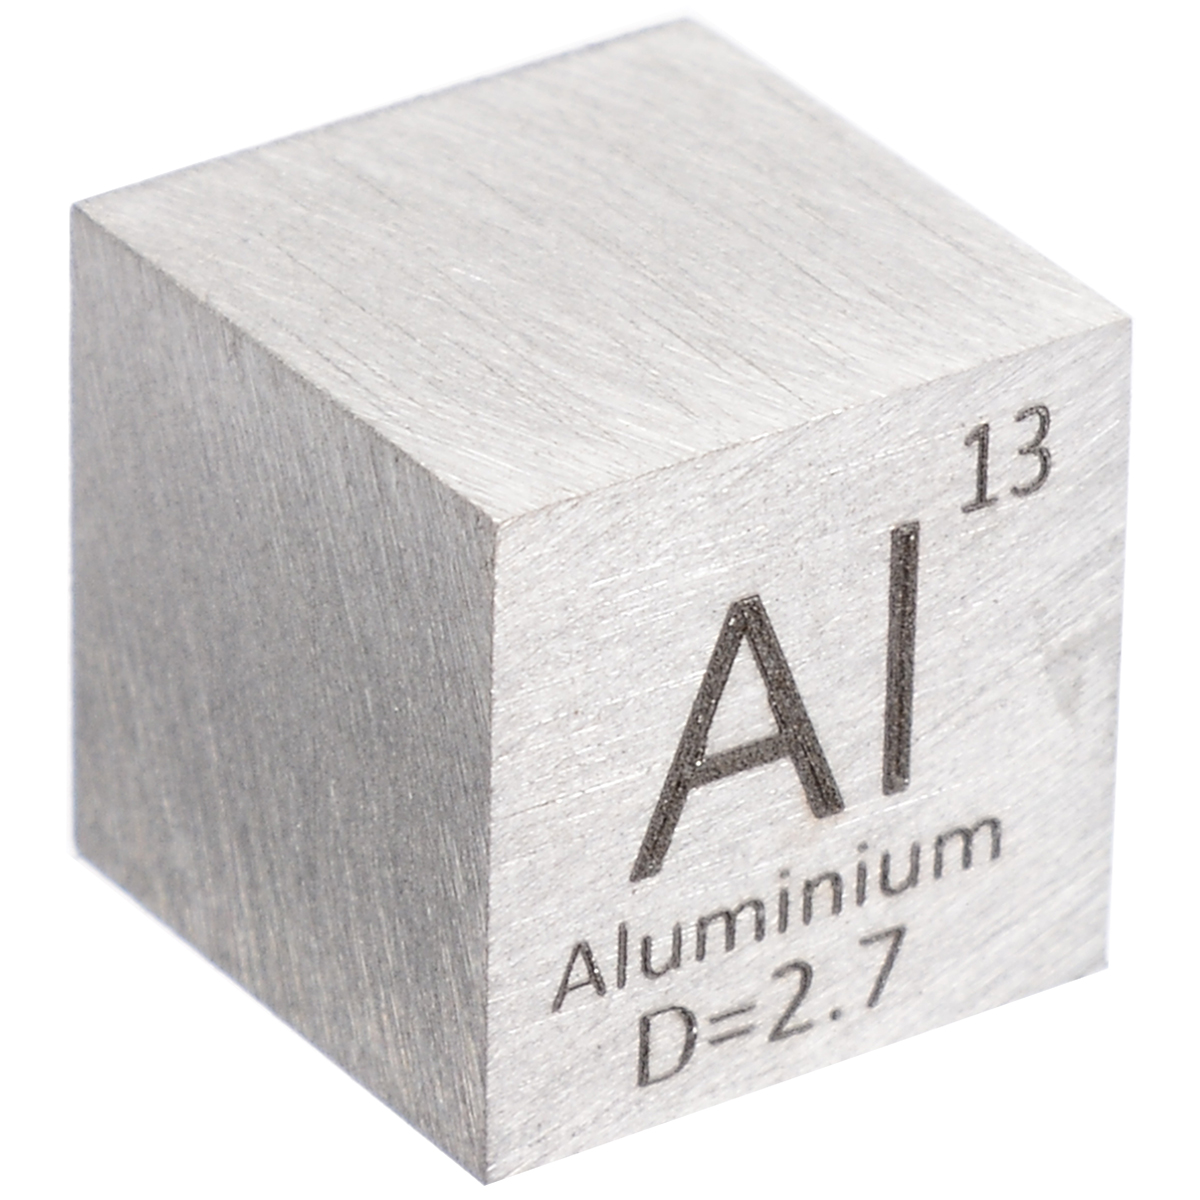 New 1Pcs 99.99% High Purity Aluminum Alloy 10mm Length Cube Carved Element Periodic Table